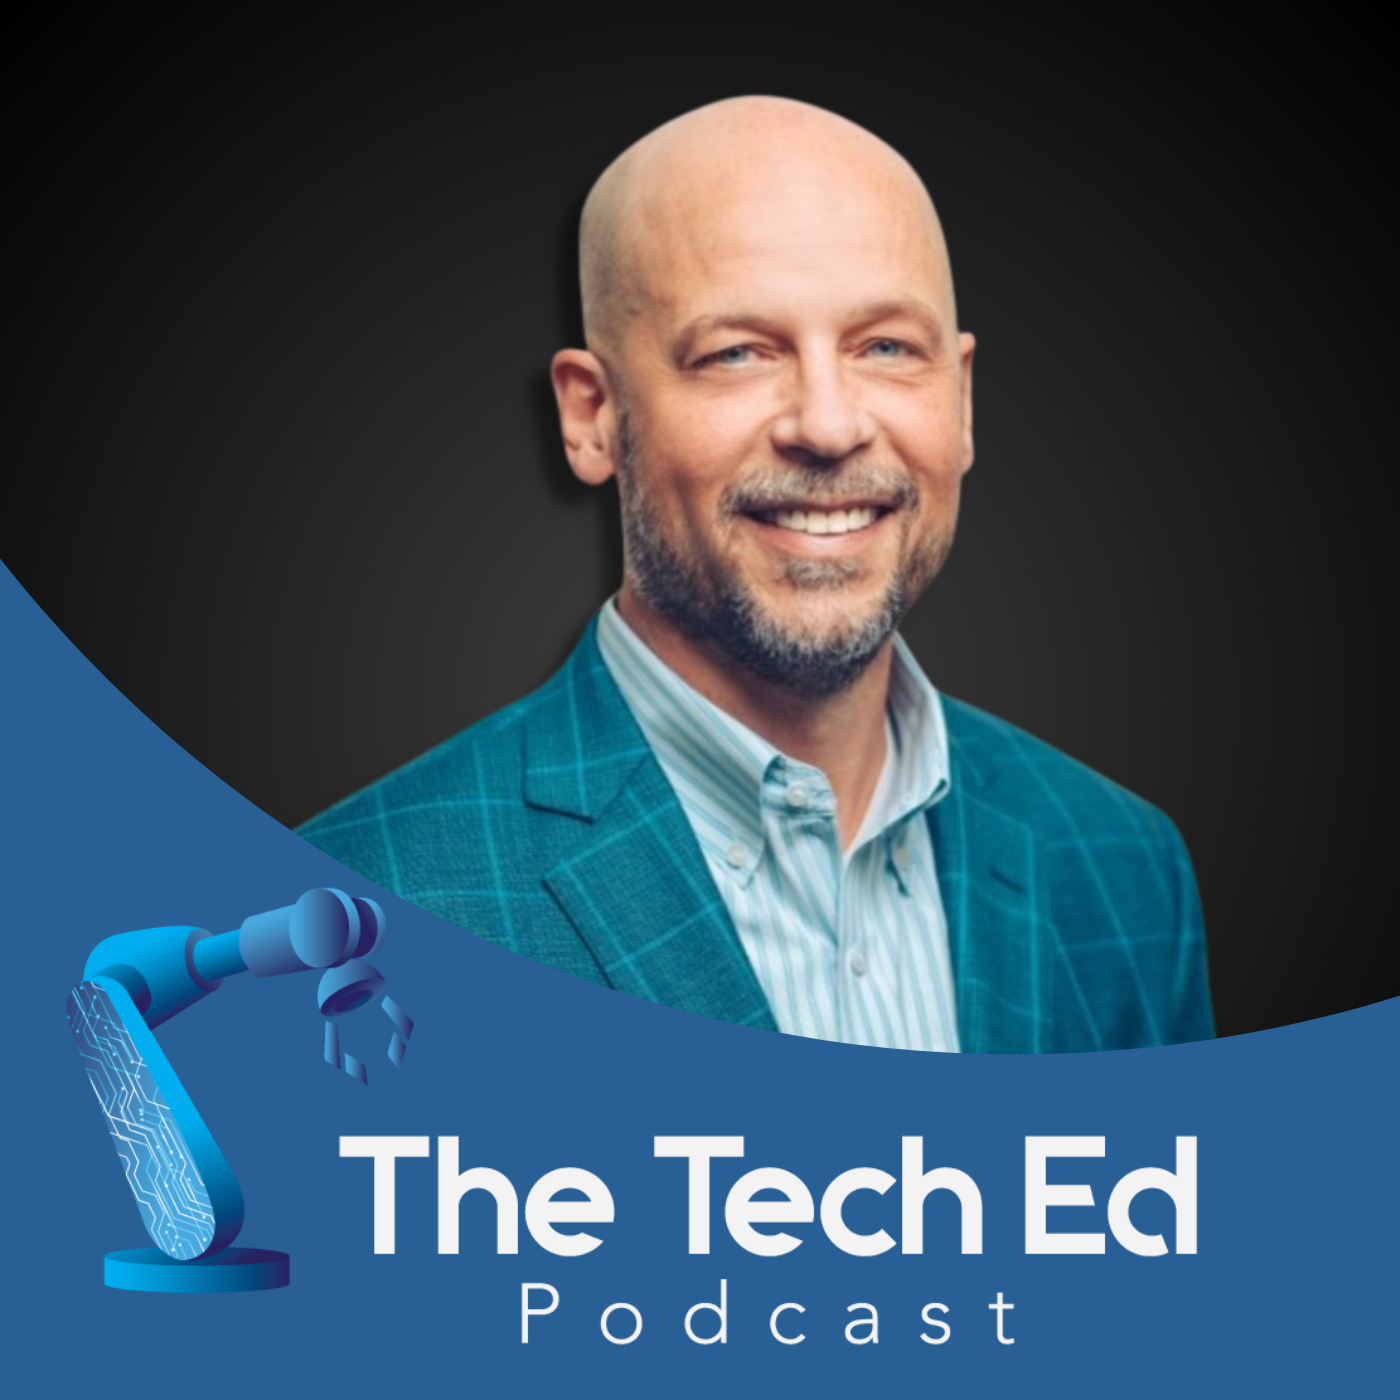 John Pfeifer on The TechEd Podcast